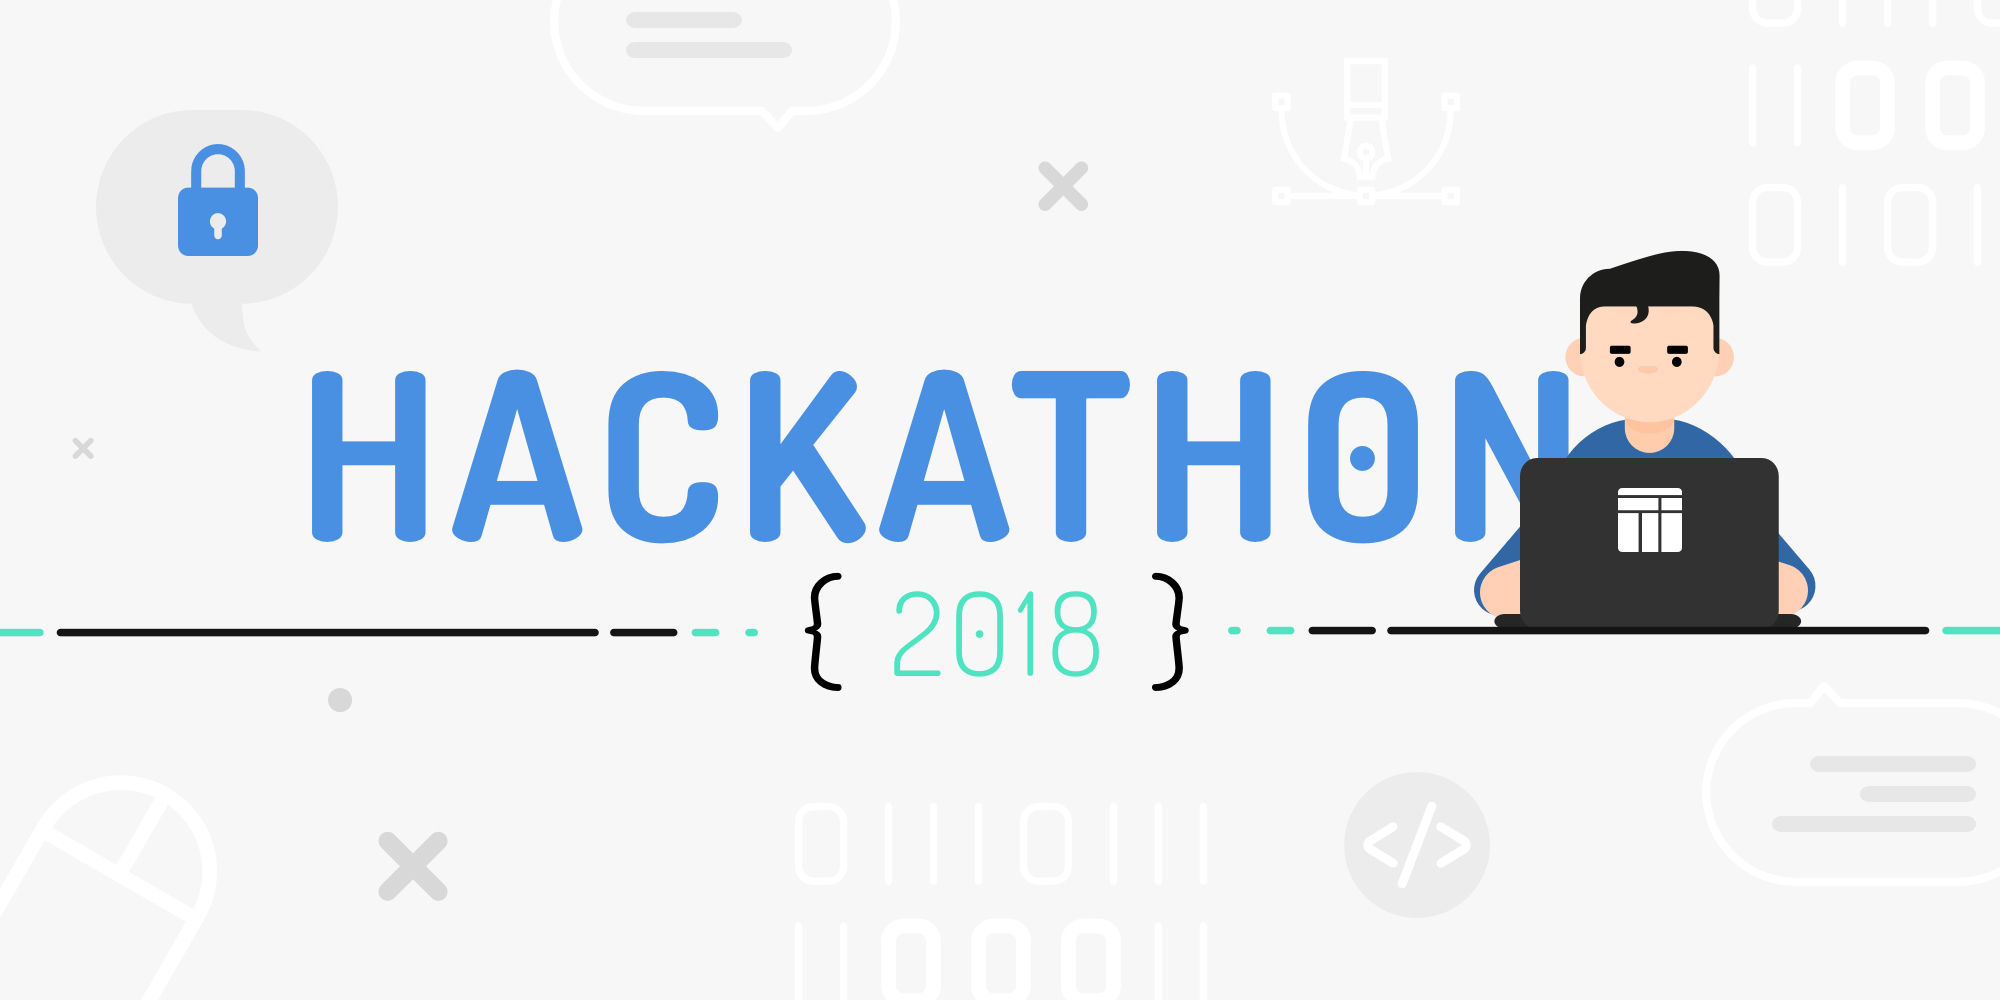 TTT's hackathon weekend